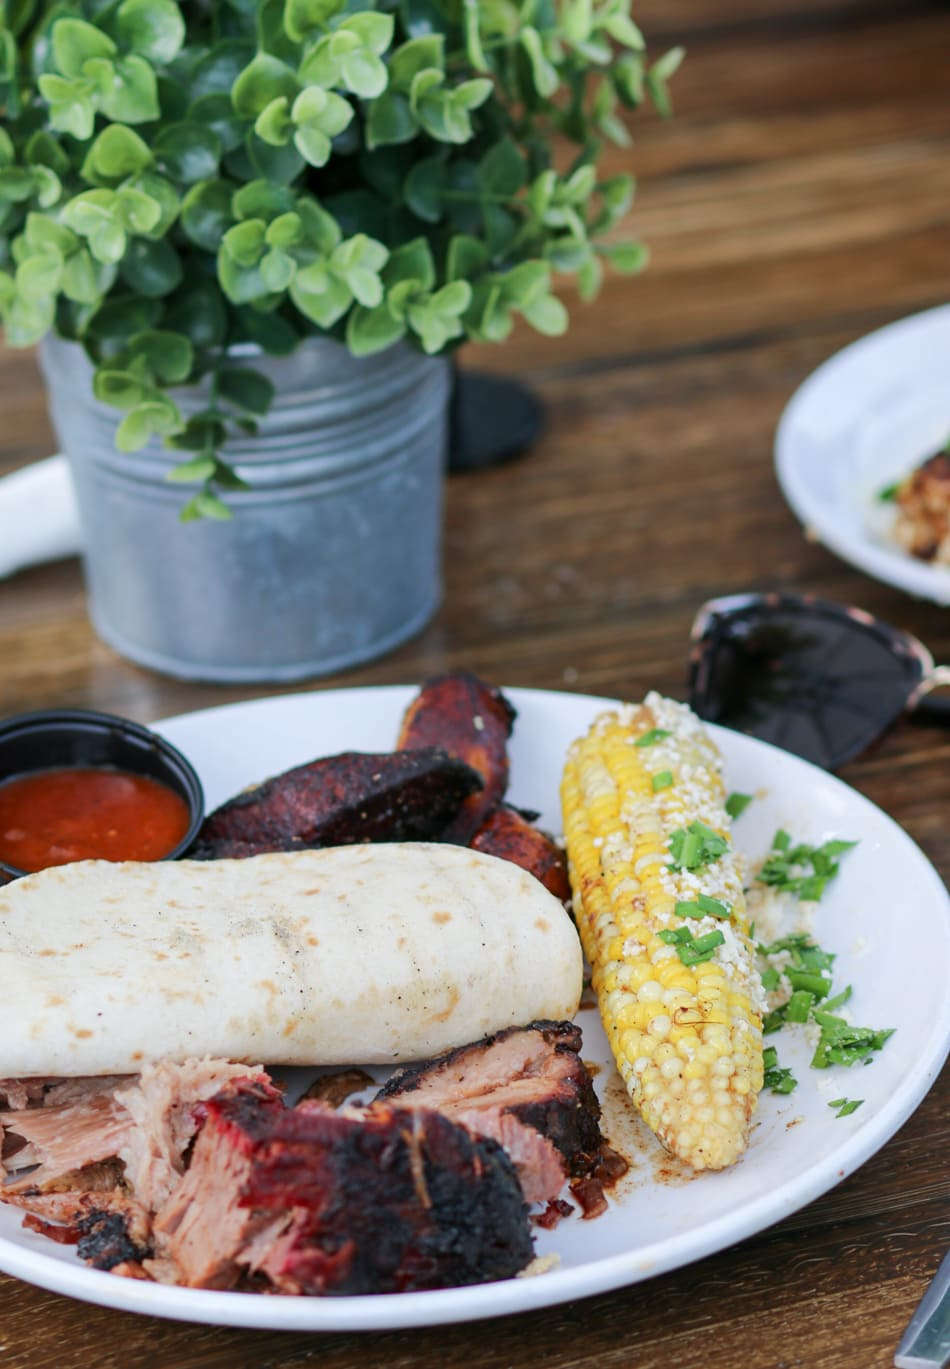 Barbeque and grilled corn at Pig Floyd's | Planning a trip to Orlando? I've rounded up the top 10 things to do in Orlando, Florida, that are guaranteed to make your trip a success. Whether you're moving to Orlando or just headed in on vacation, you will LOVE this list of fun activities in Orlando by Florida travel blogger Ashley Brooke Nicholas #CORTatHome sponsored by   @cortfurniture    affordable travel tips, orlando vacation tips, vacation tips, orlando eye, leu gardens, universal studios, islands of adventure, disney, disney springs